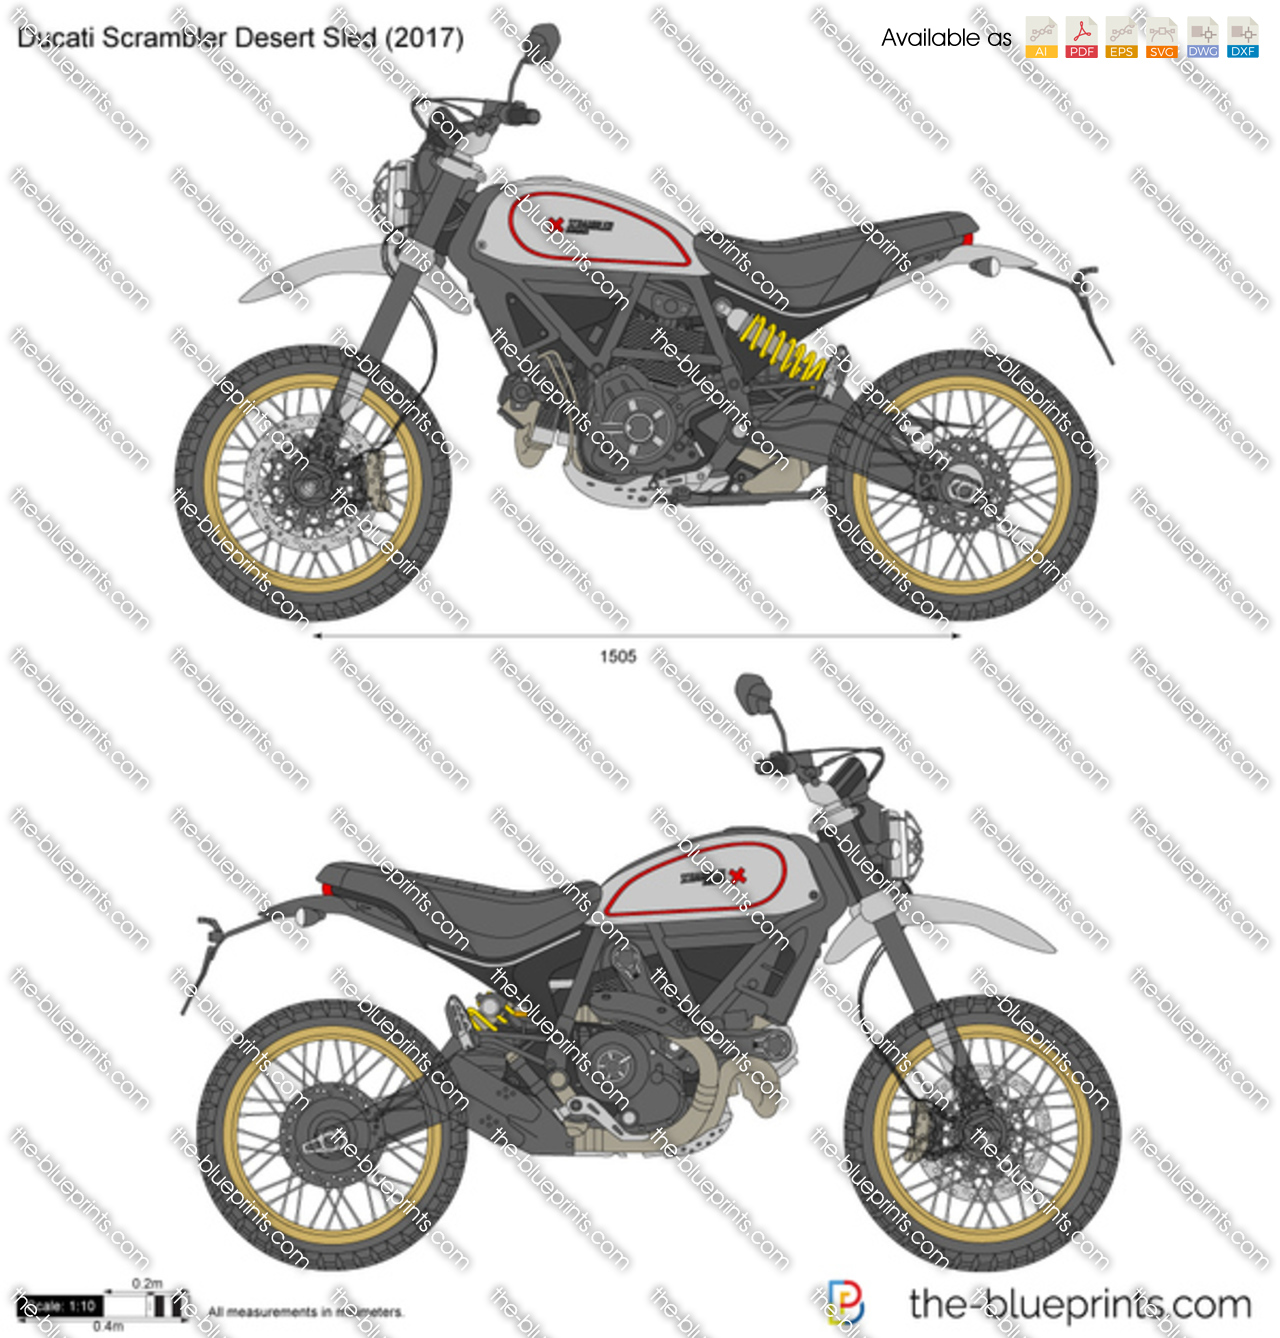 ducati scrambler desert sled vector drawing. Black Bedroom Furniture Sets. Home Design Ideas